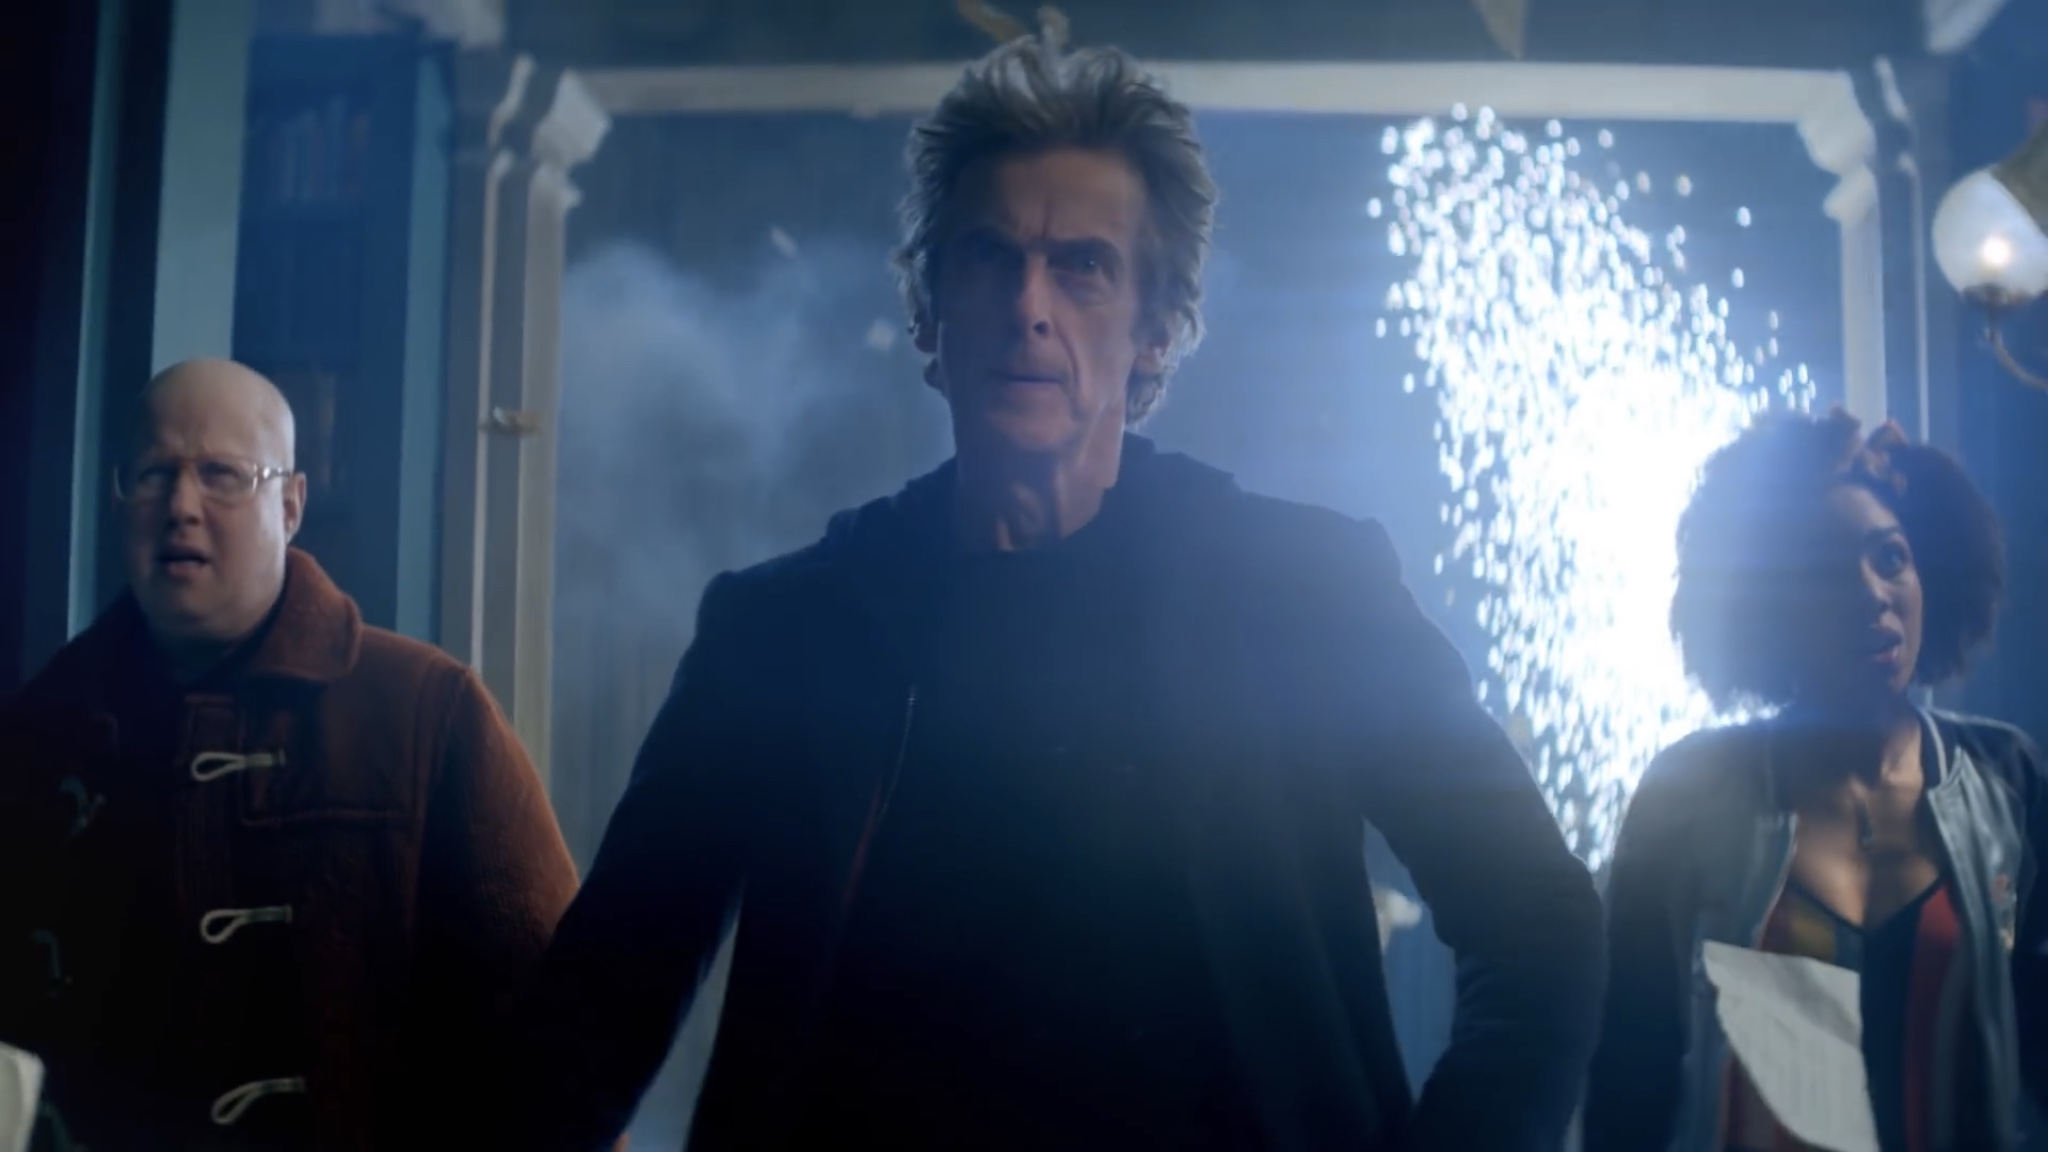 Doctor Who Scripts by Steven Moffat Available on BBC Writers' Room